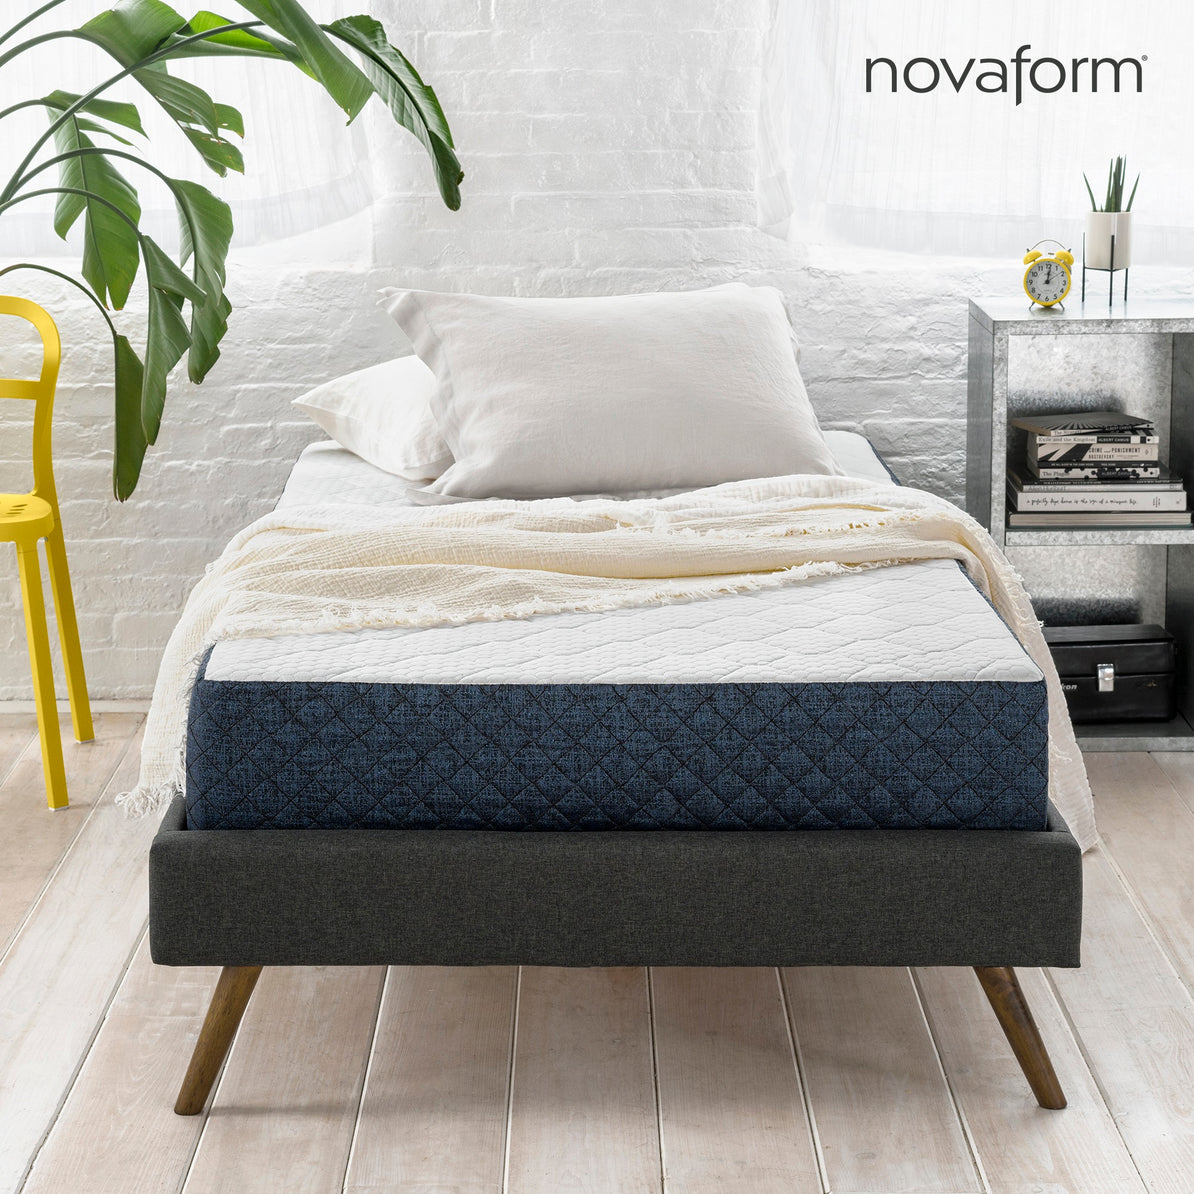 Serafina Pearl Novaform Mattress